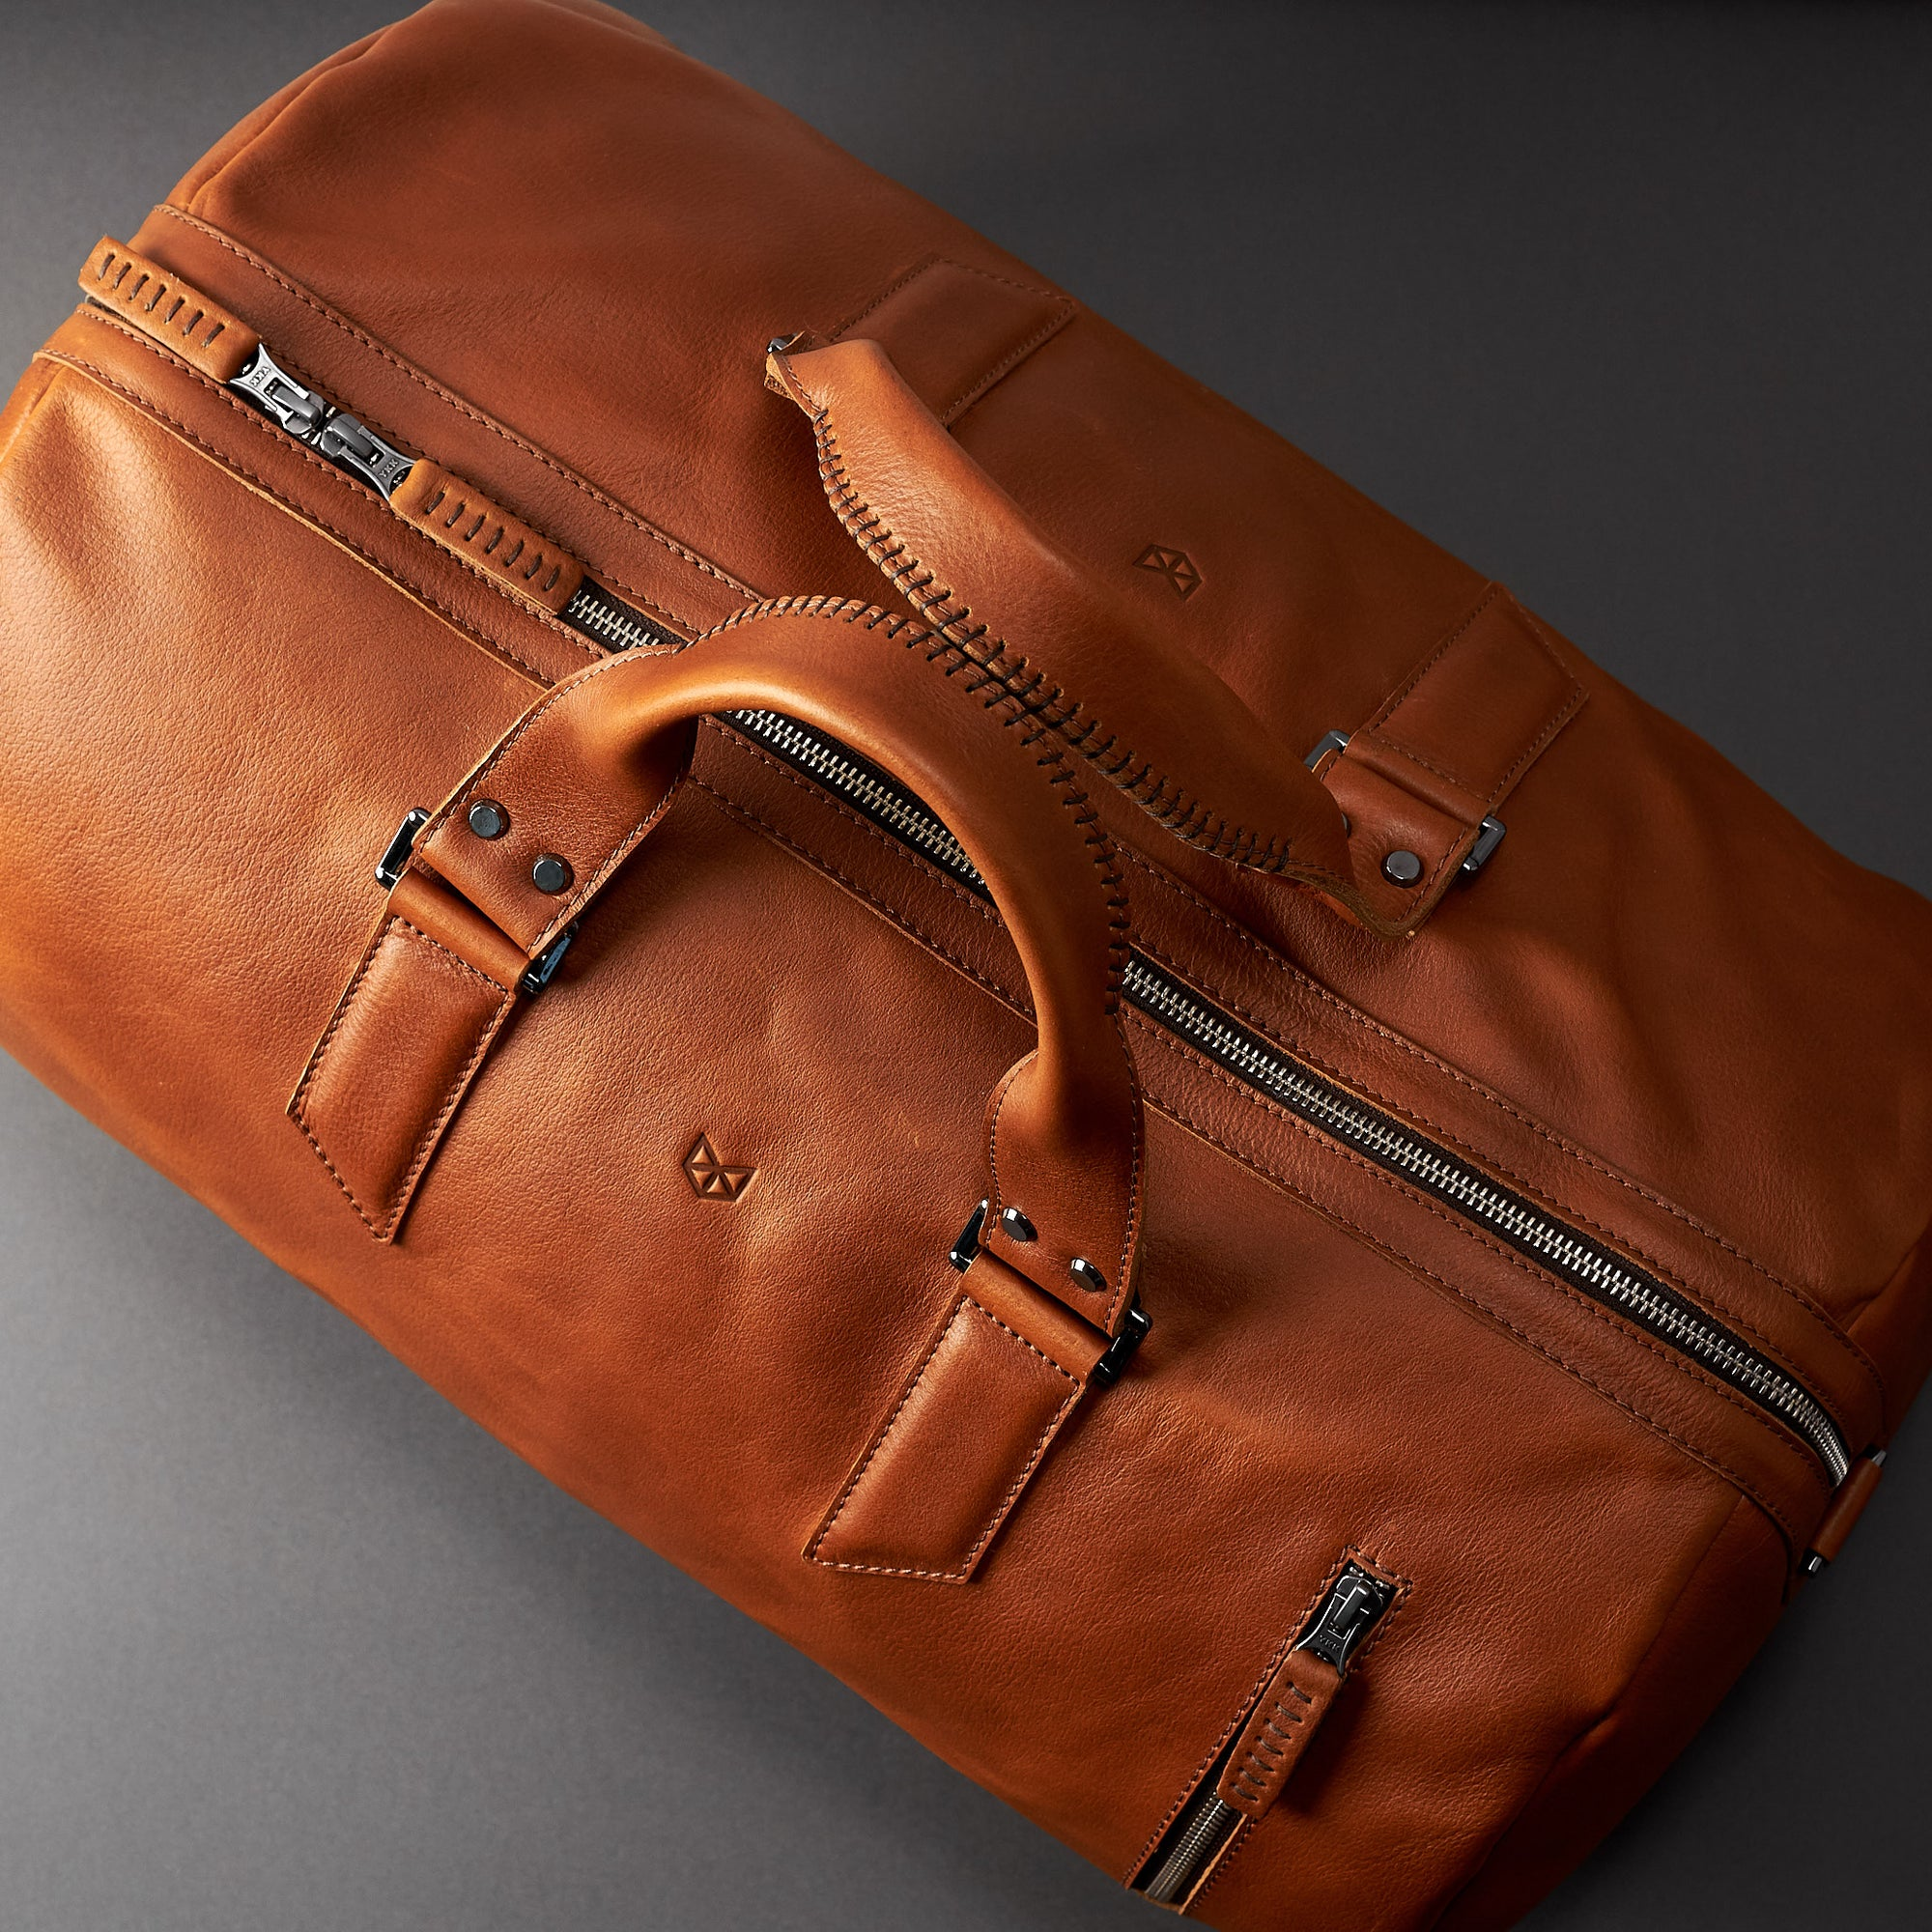 Substantial Leather Duffle Bag. Gifts for Men.